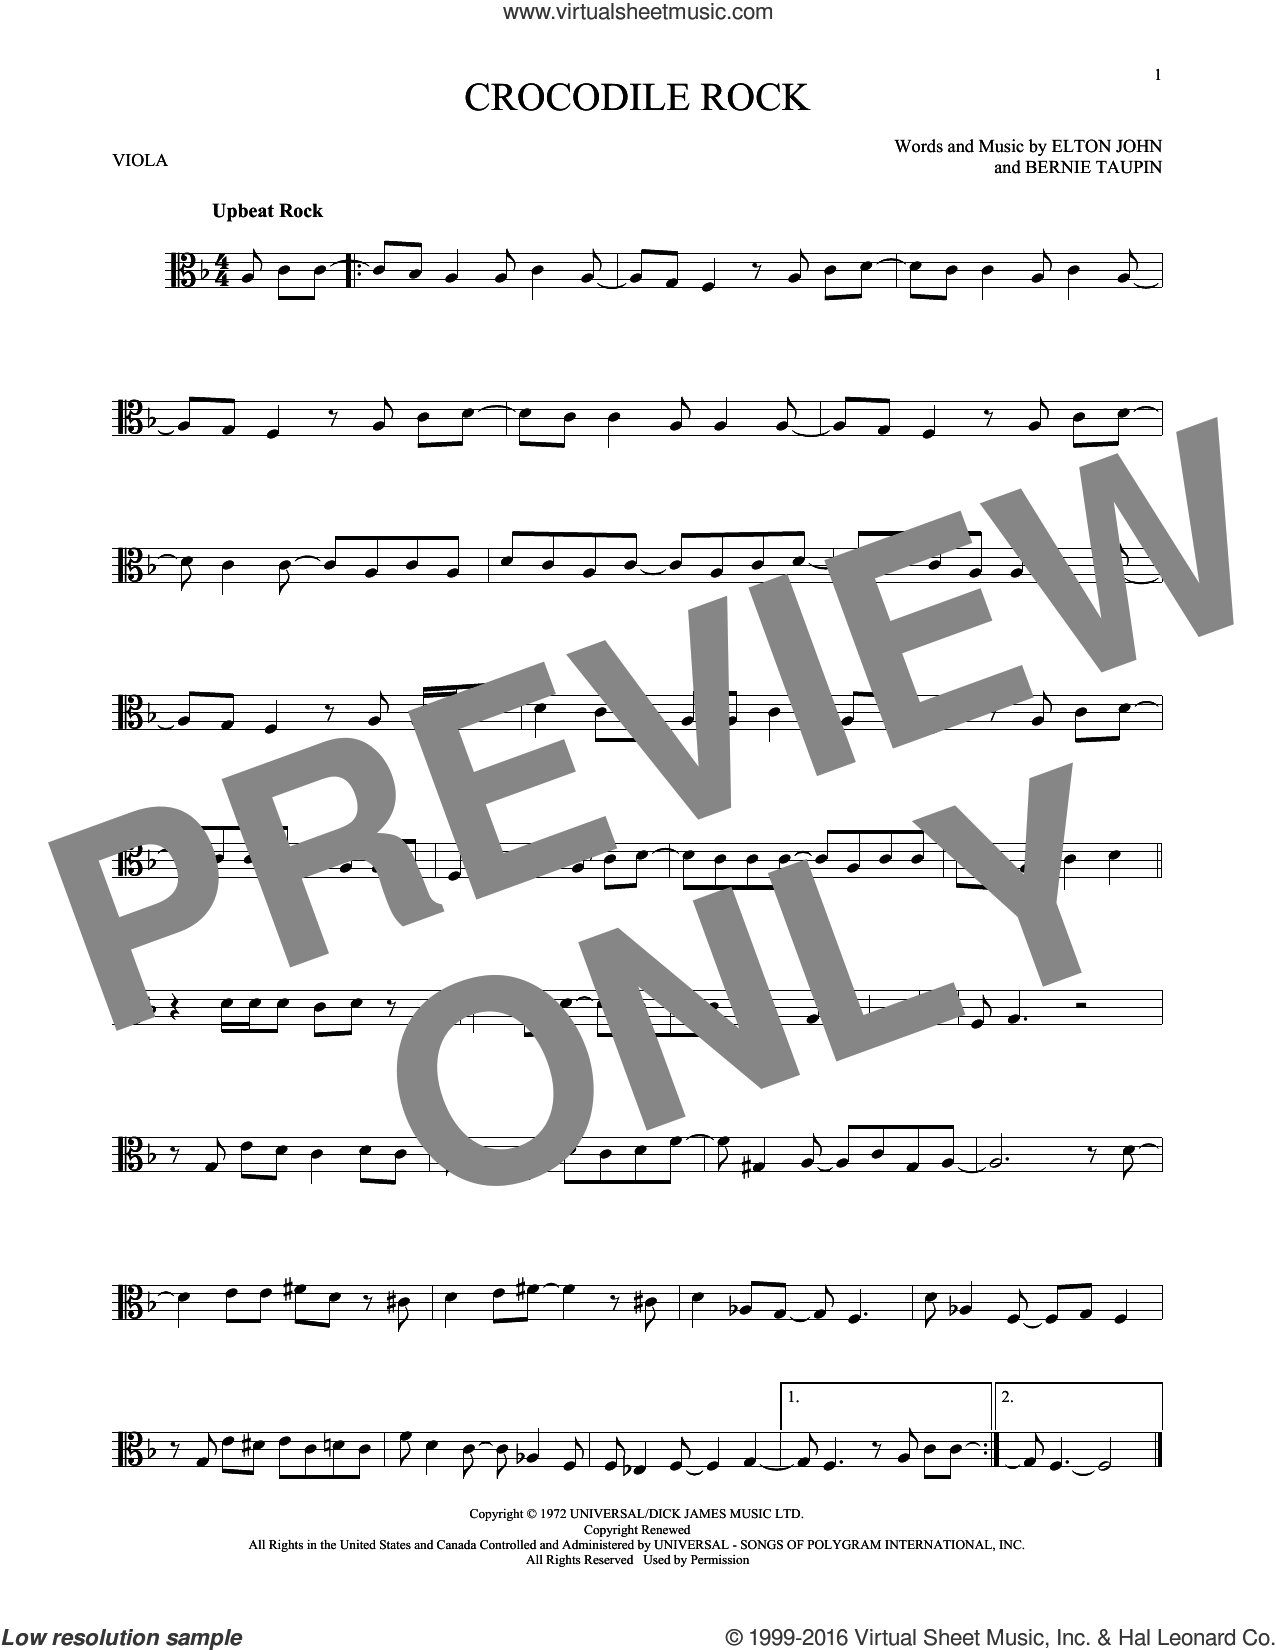 Crocodile Rock sheet music for viola solo by Elton John and Bernie Taupin. Score Image Preview.